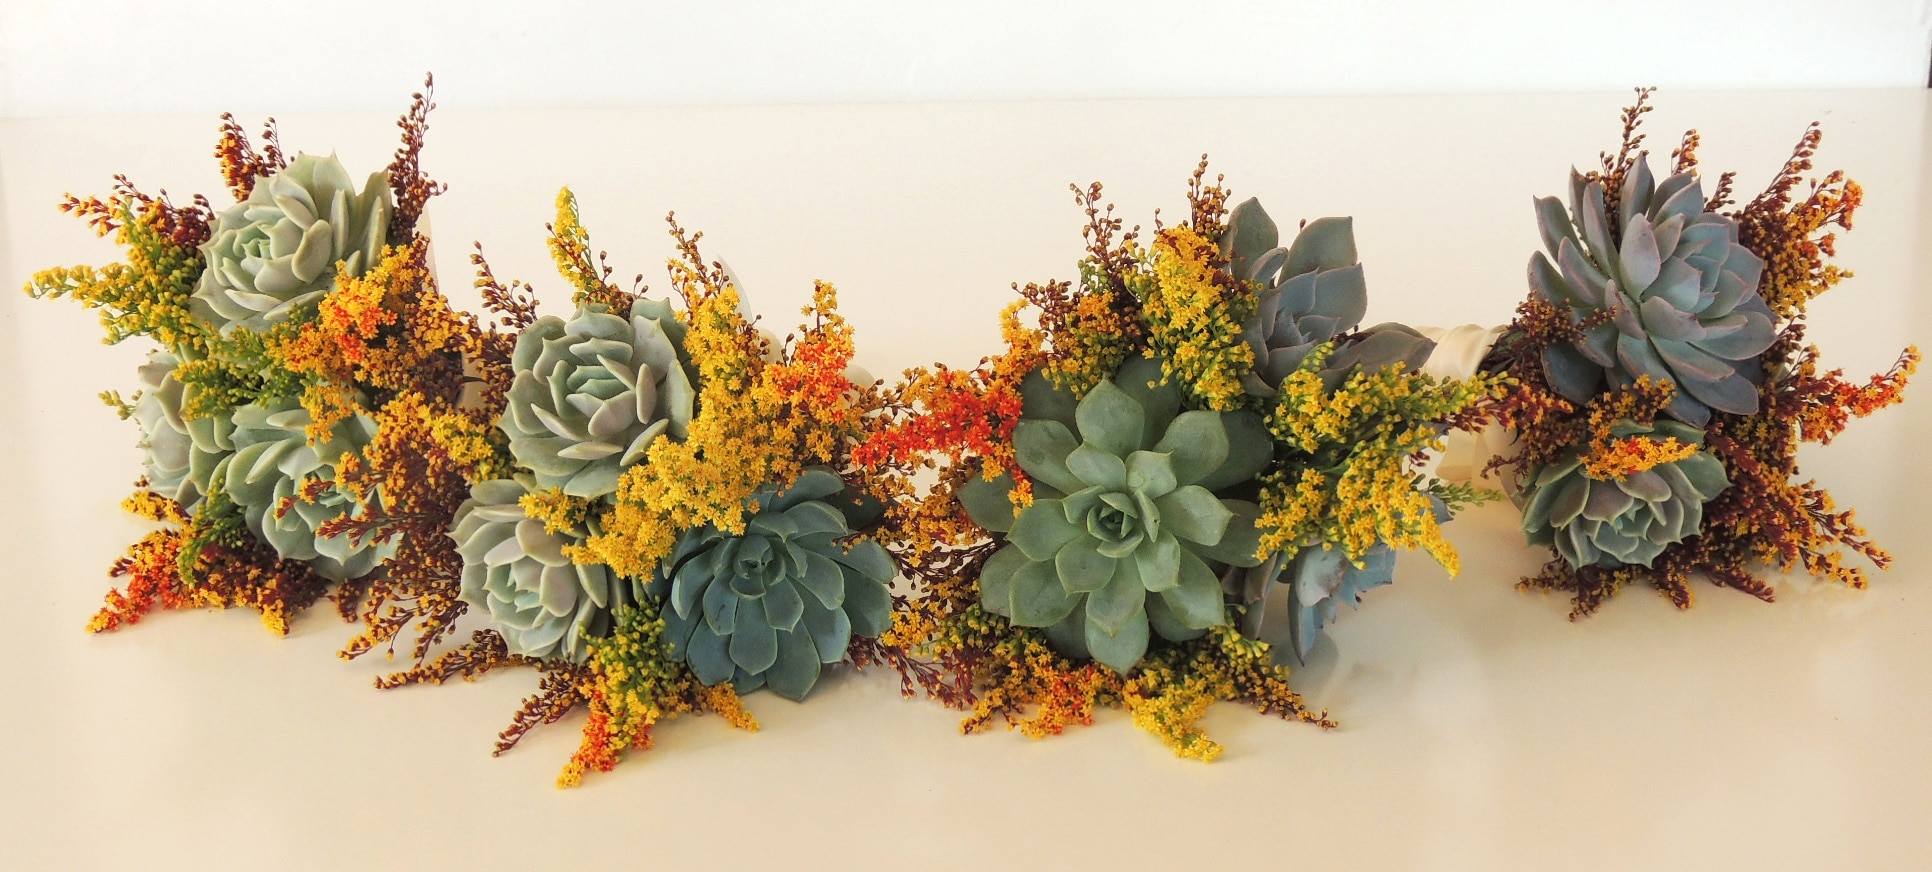 succulents-autum_2148-2b